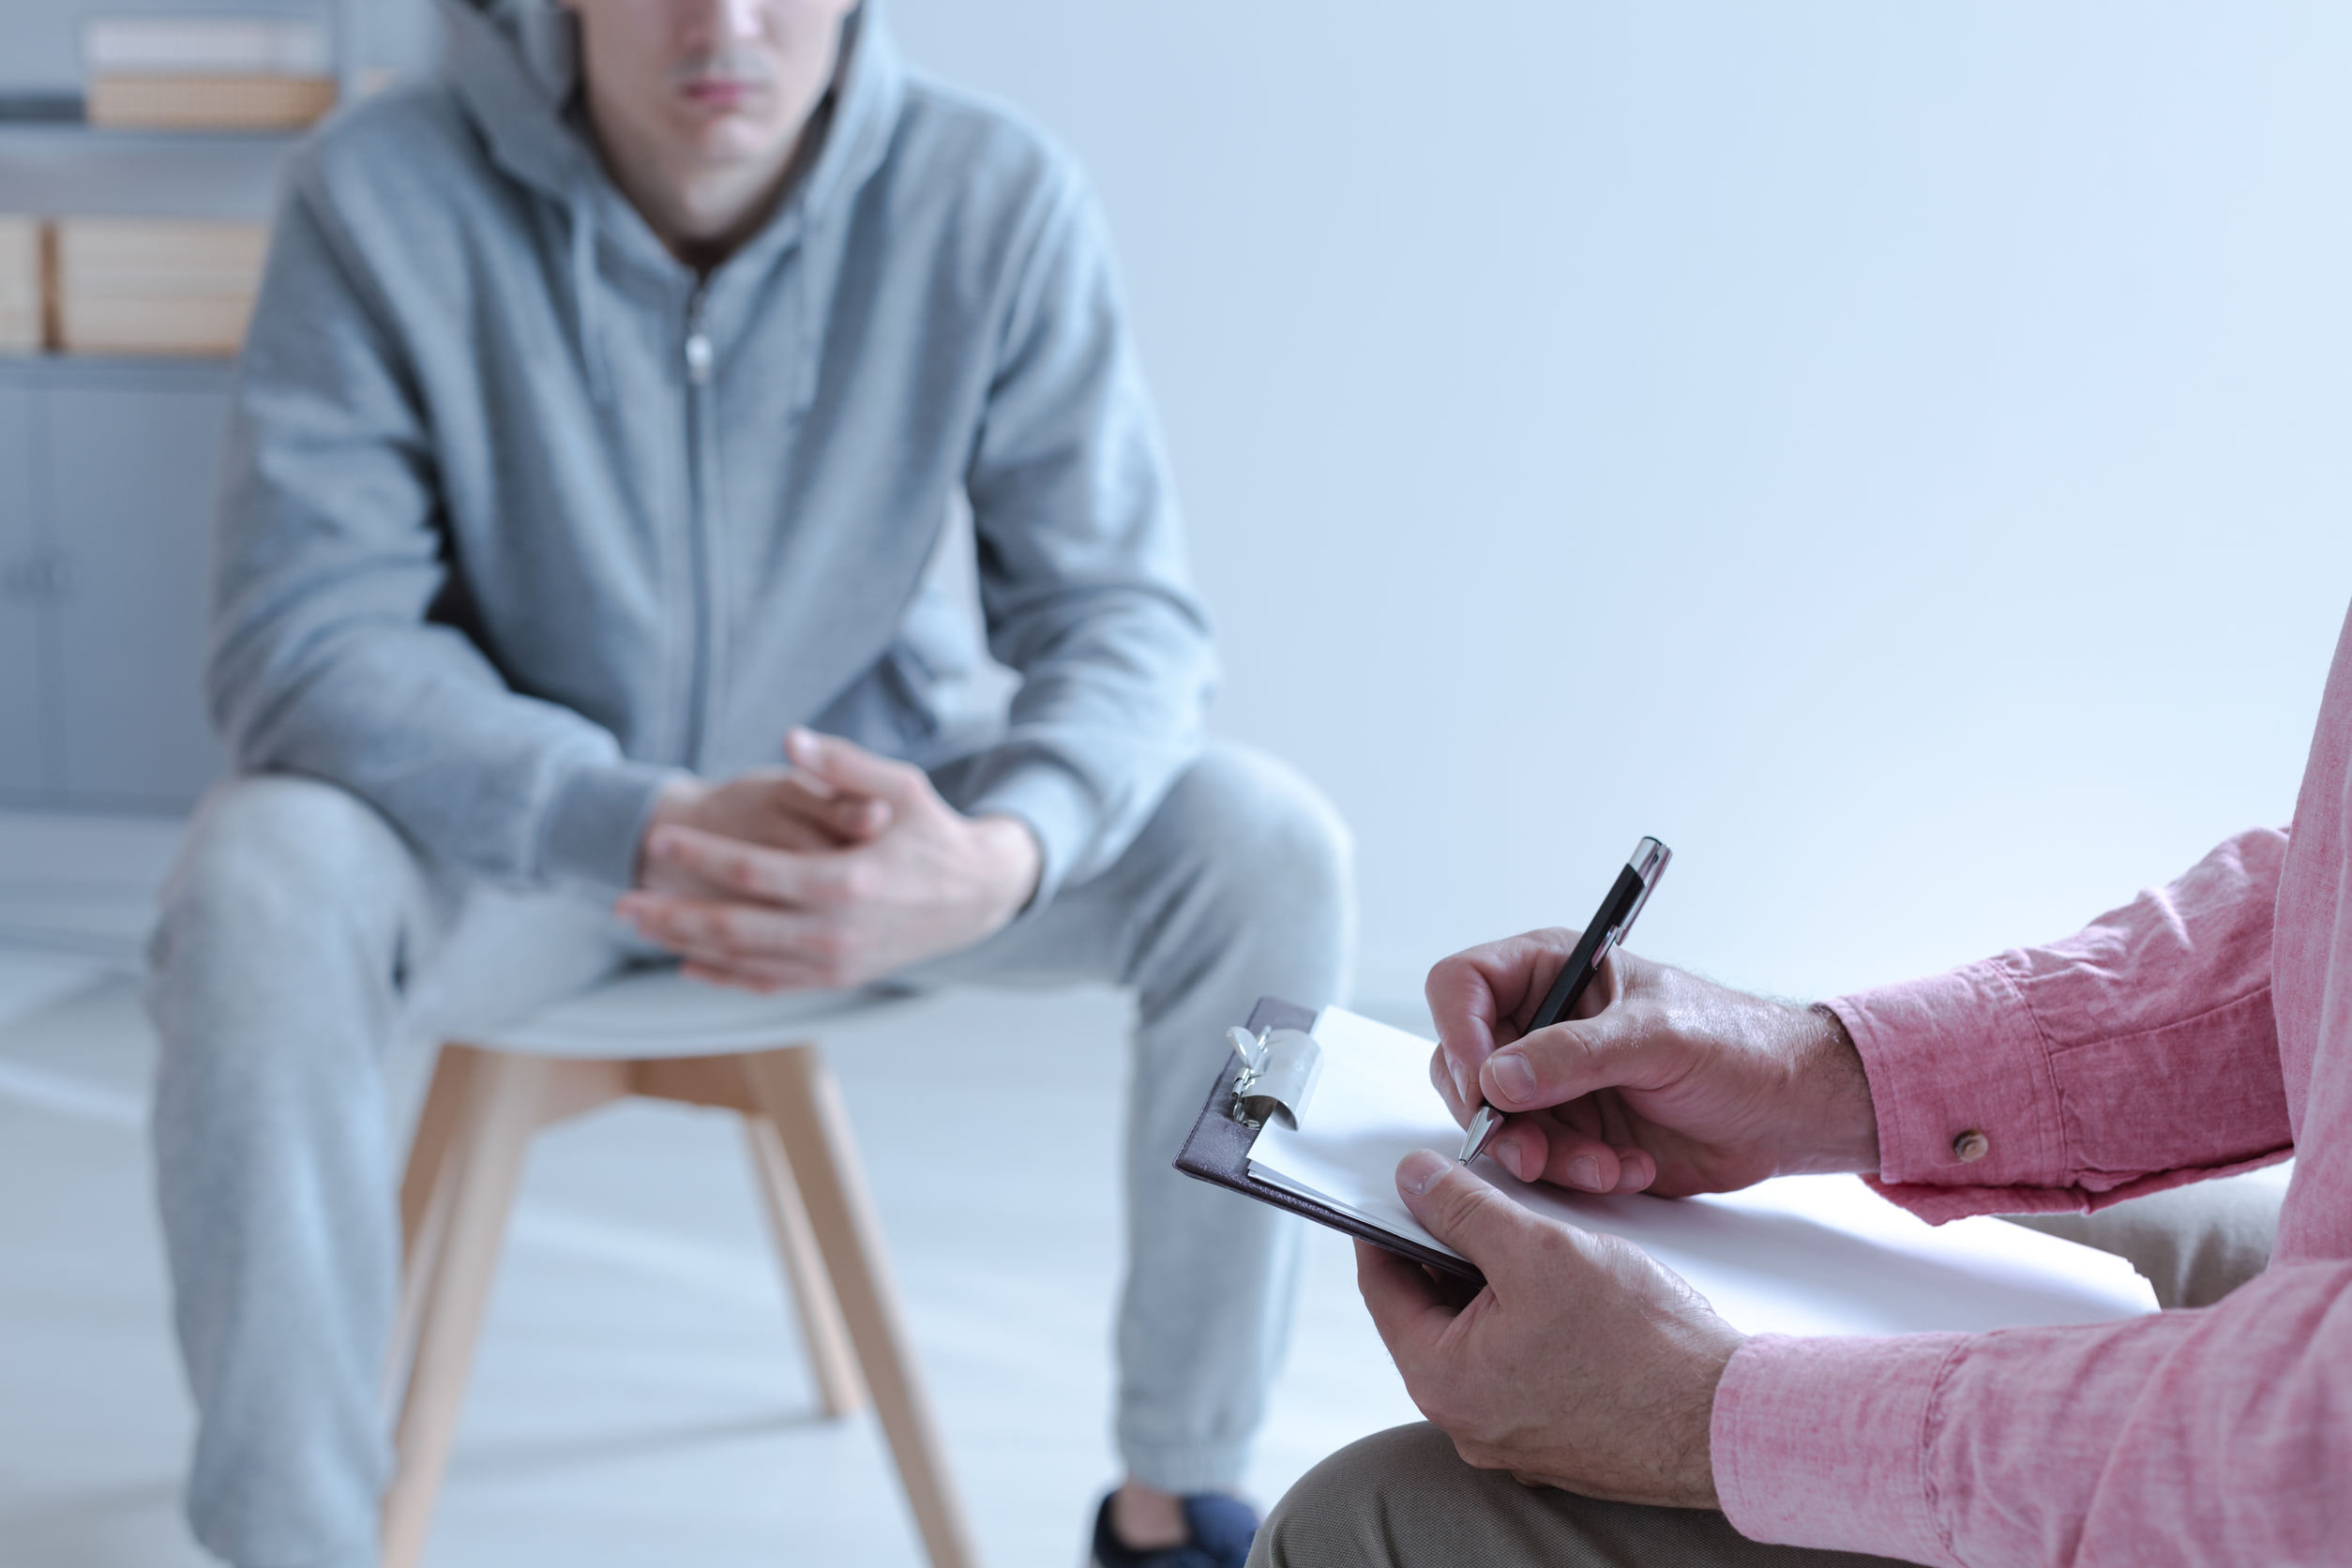 A young troubled man sitting on a chair in a blurred background. In the front hands of a therapy specialist taking notes during an individual meeting. Copy space.